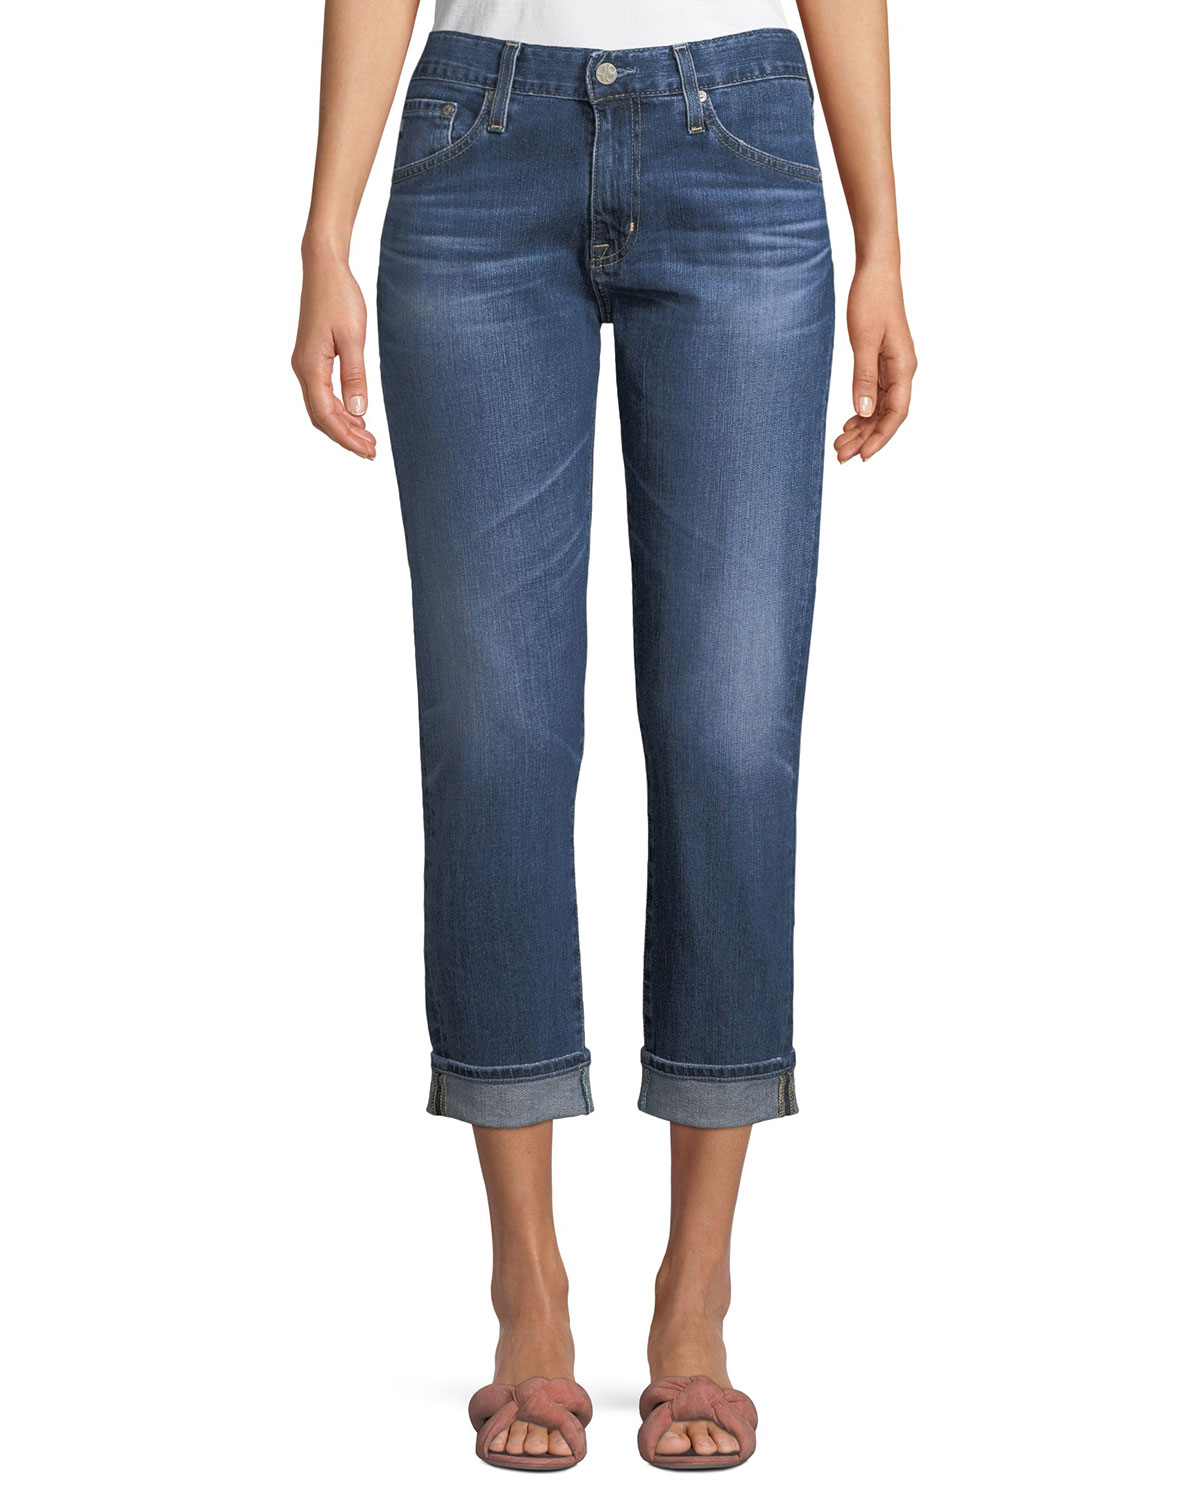 The Ex-Boyfriend Distressed Slim Jeans, 12 Years Aroma